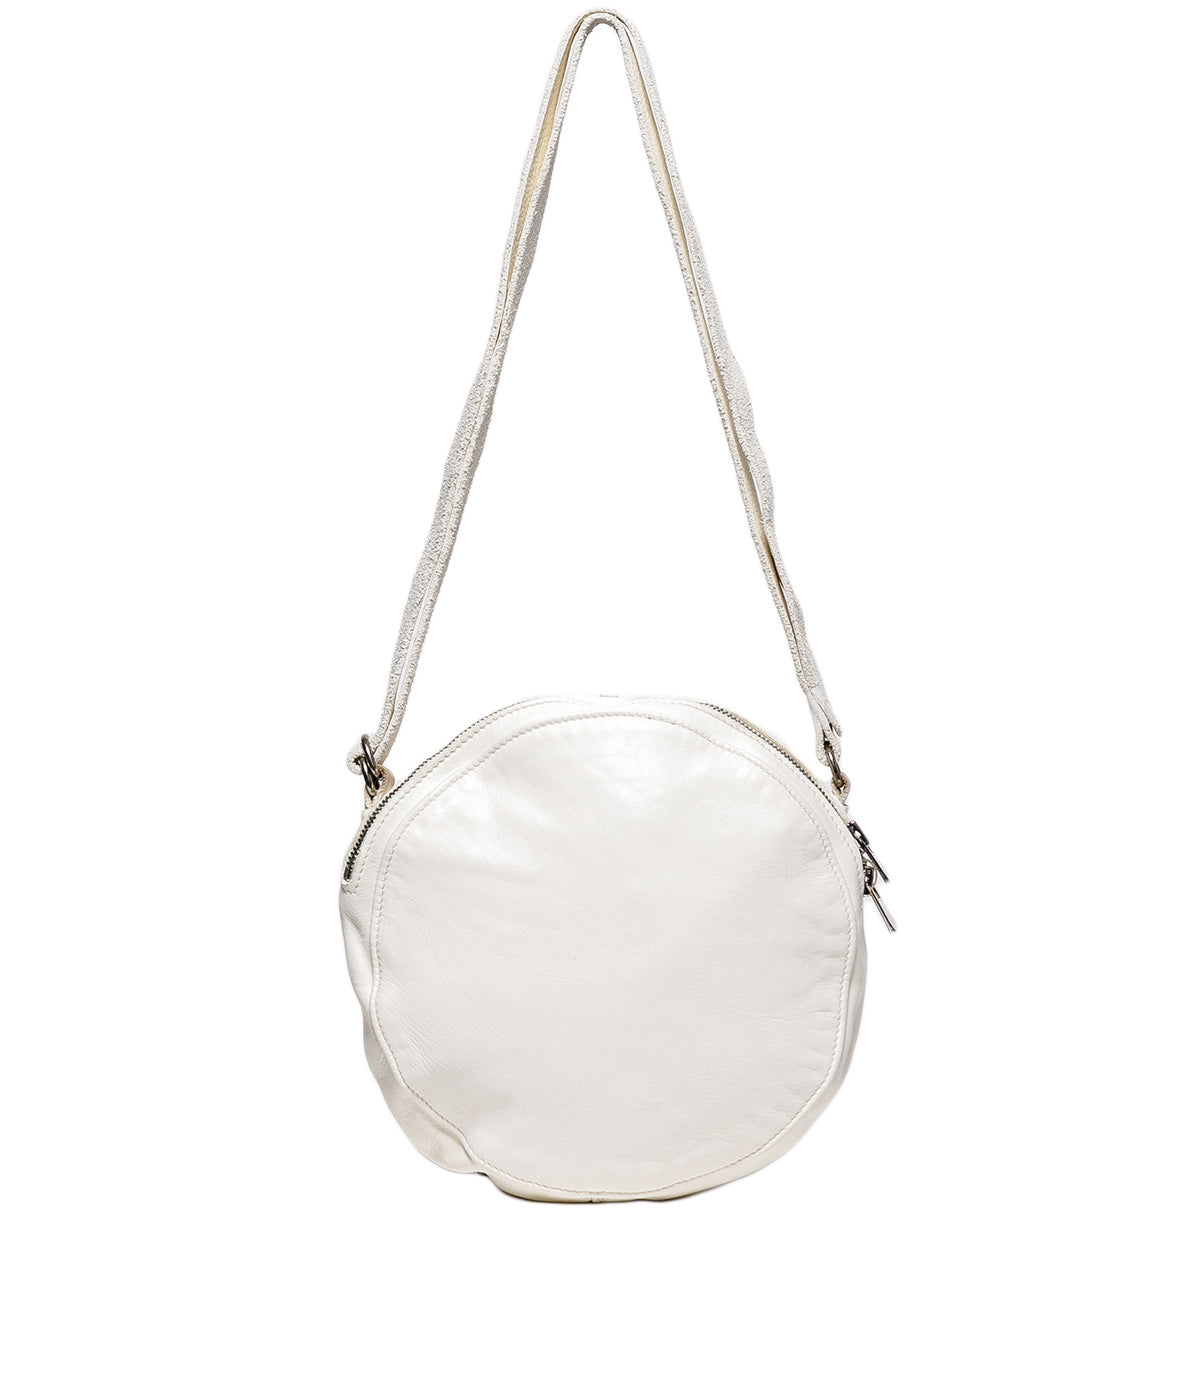 White Oval Crossbody Bag